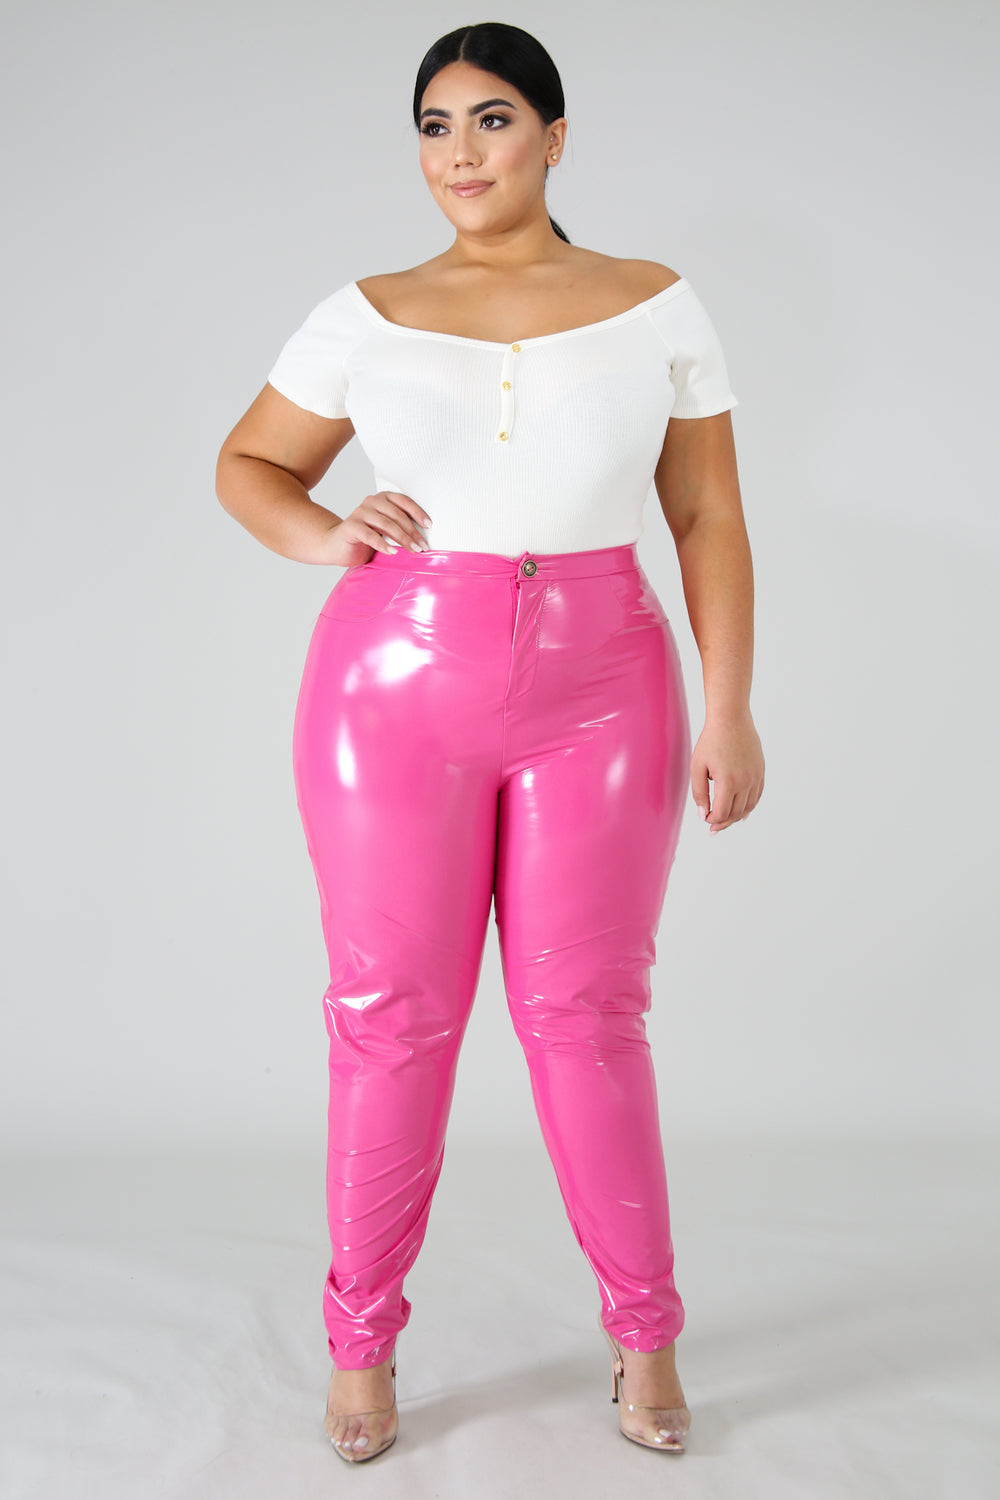 Candy Paint | Liquid Pants - Bougie Chic Boutique